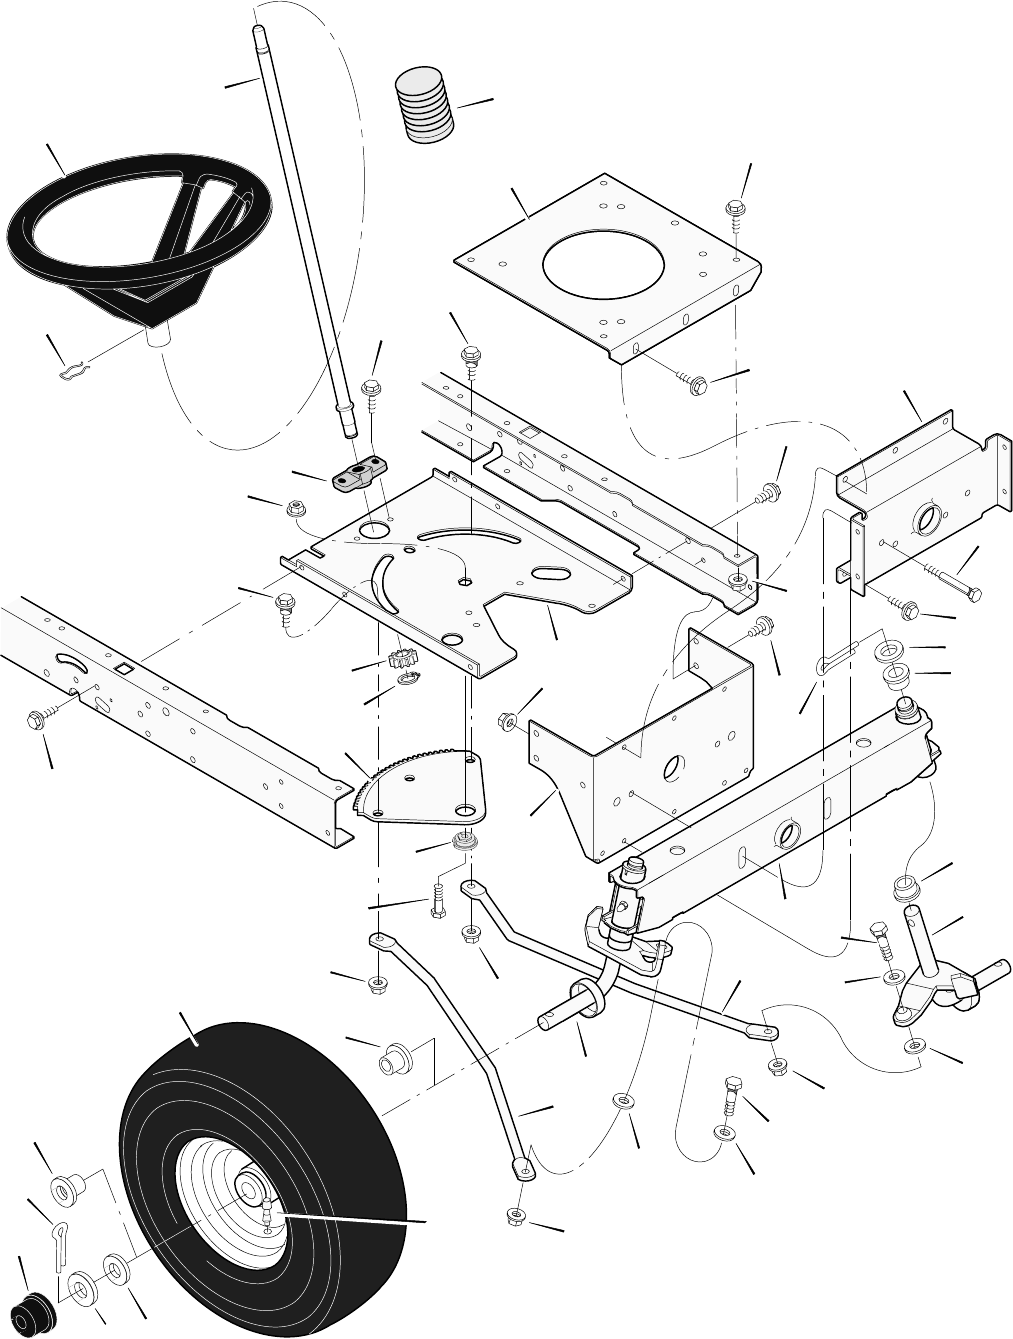 Page 40 of Murray Lawn Mower 425620x92B User Guide